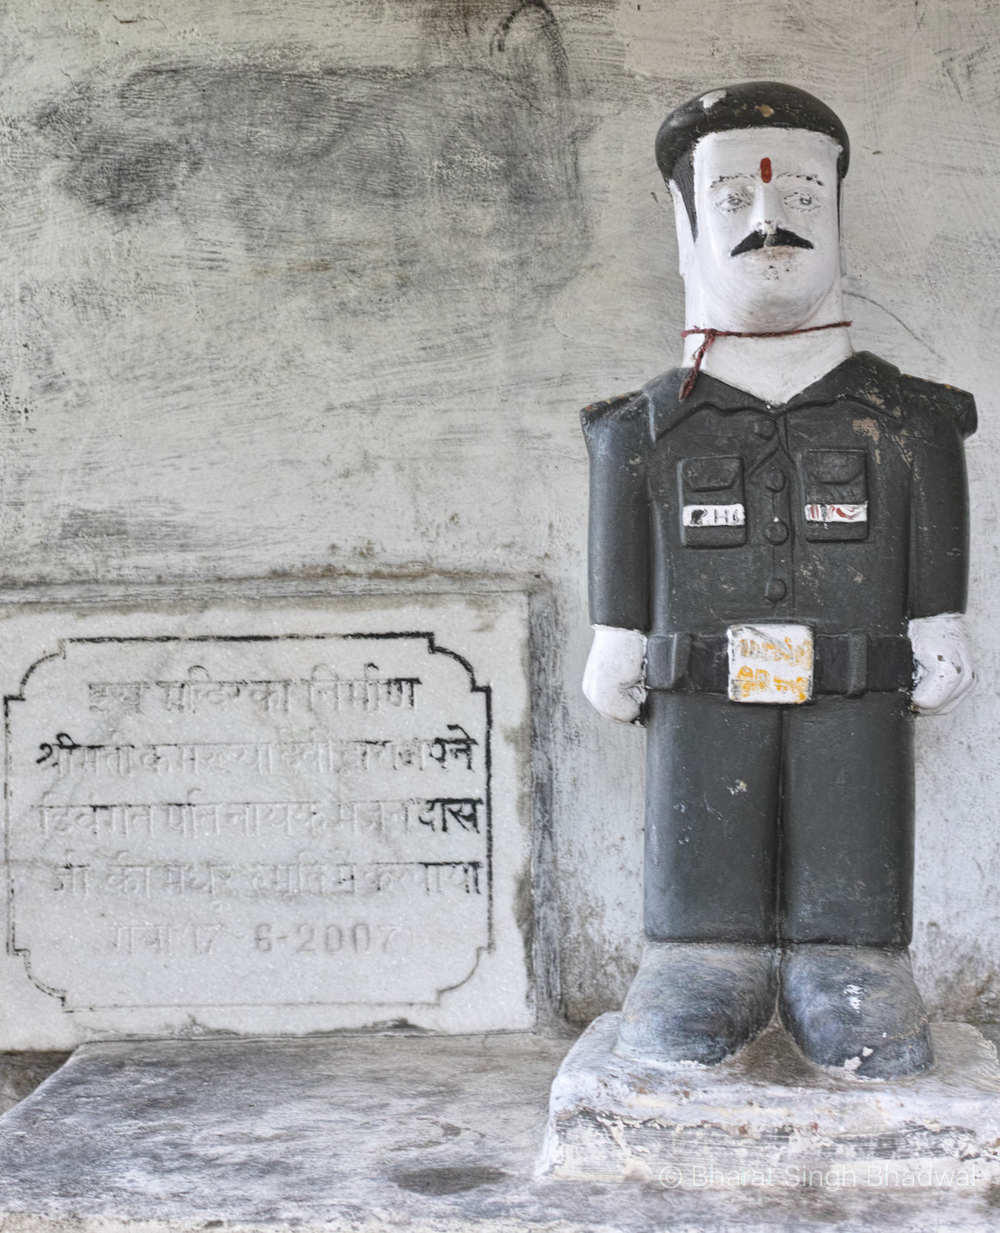 A memorial between Balh and Guna temple